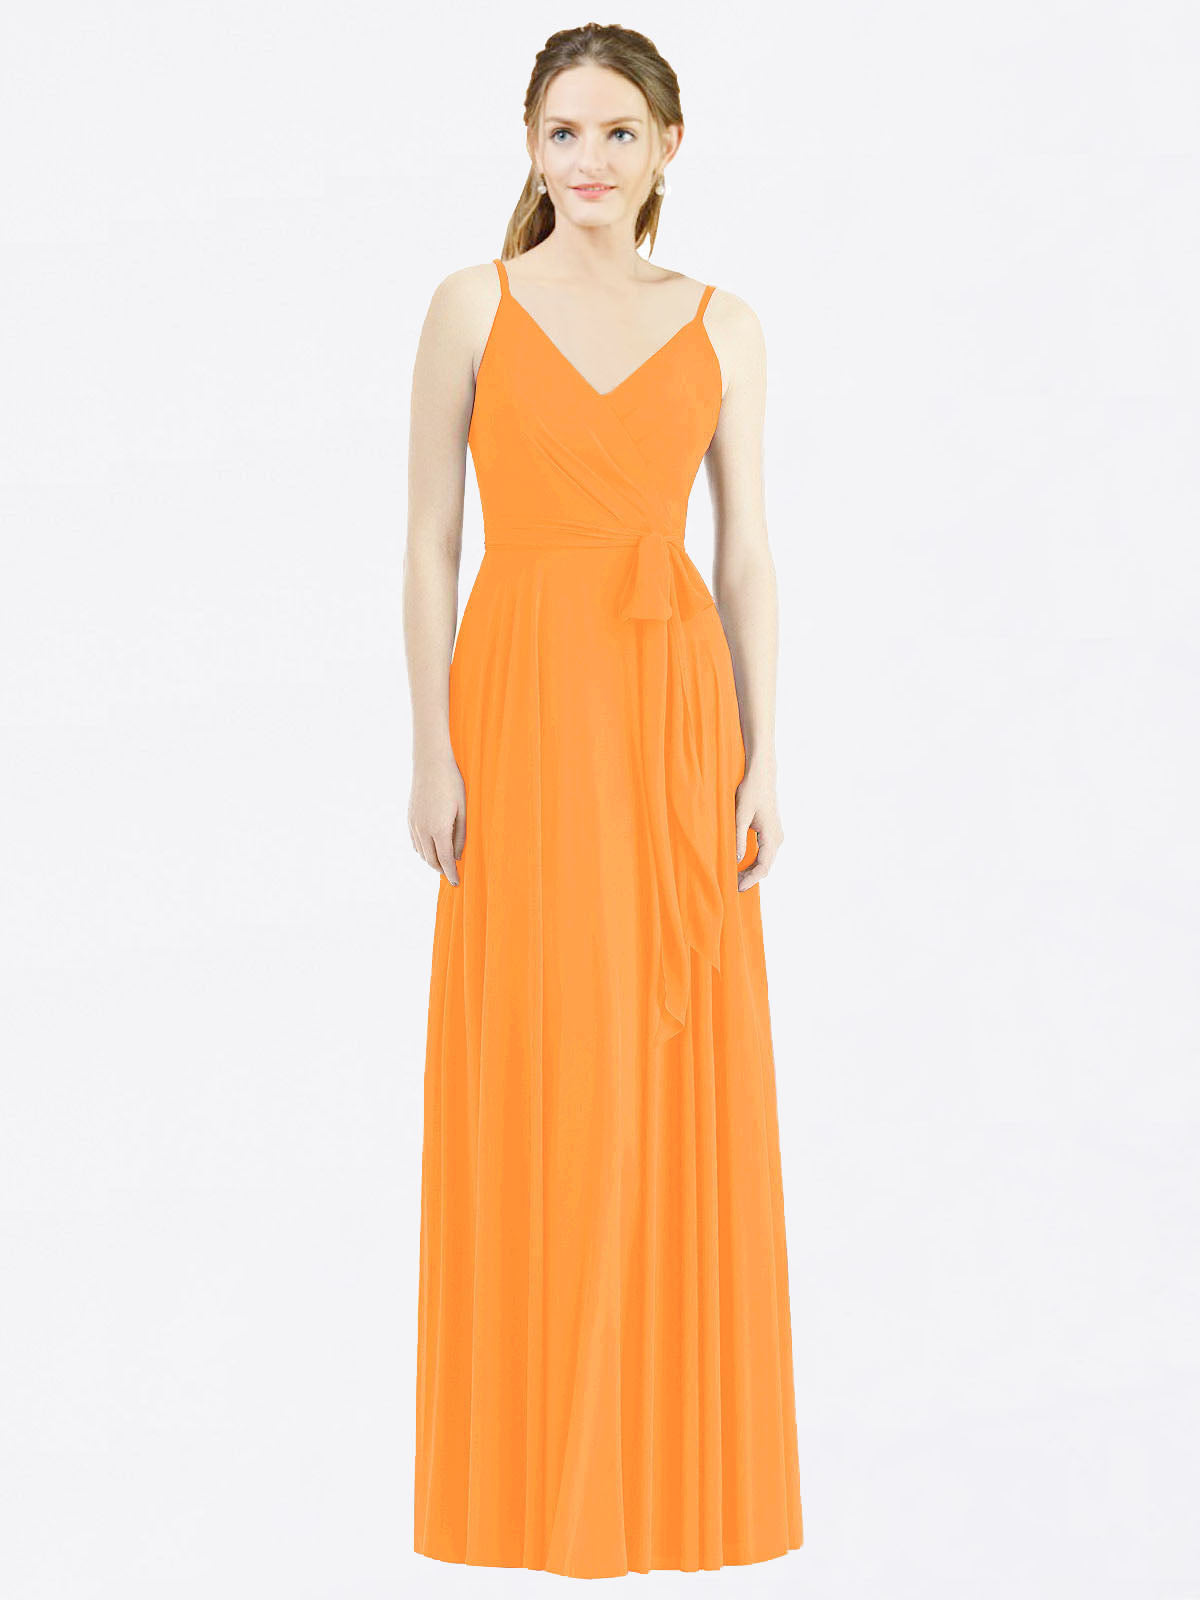 Long A-Line Spaghetti Straps, V-Neck Sleeveless Orange Chiffon Bridesmaid Dress Madilyn